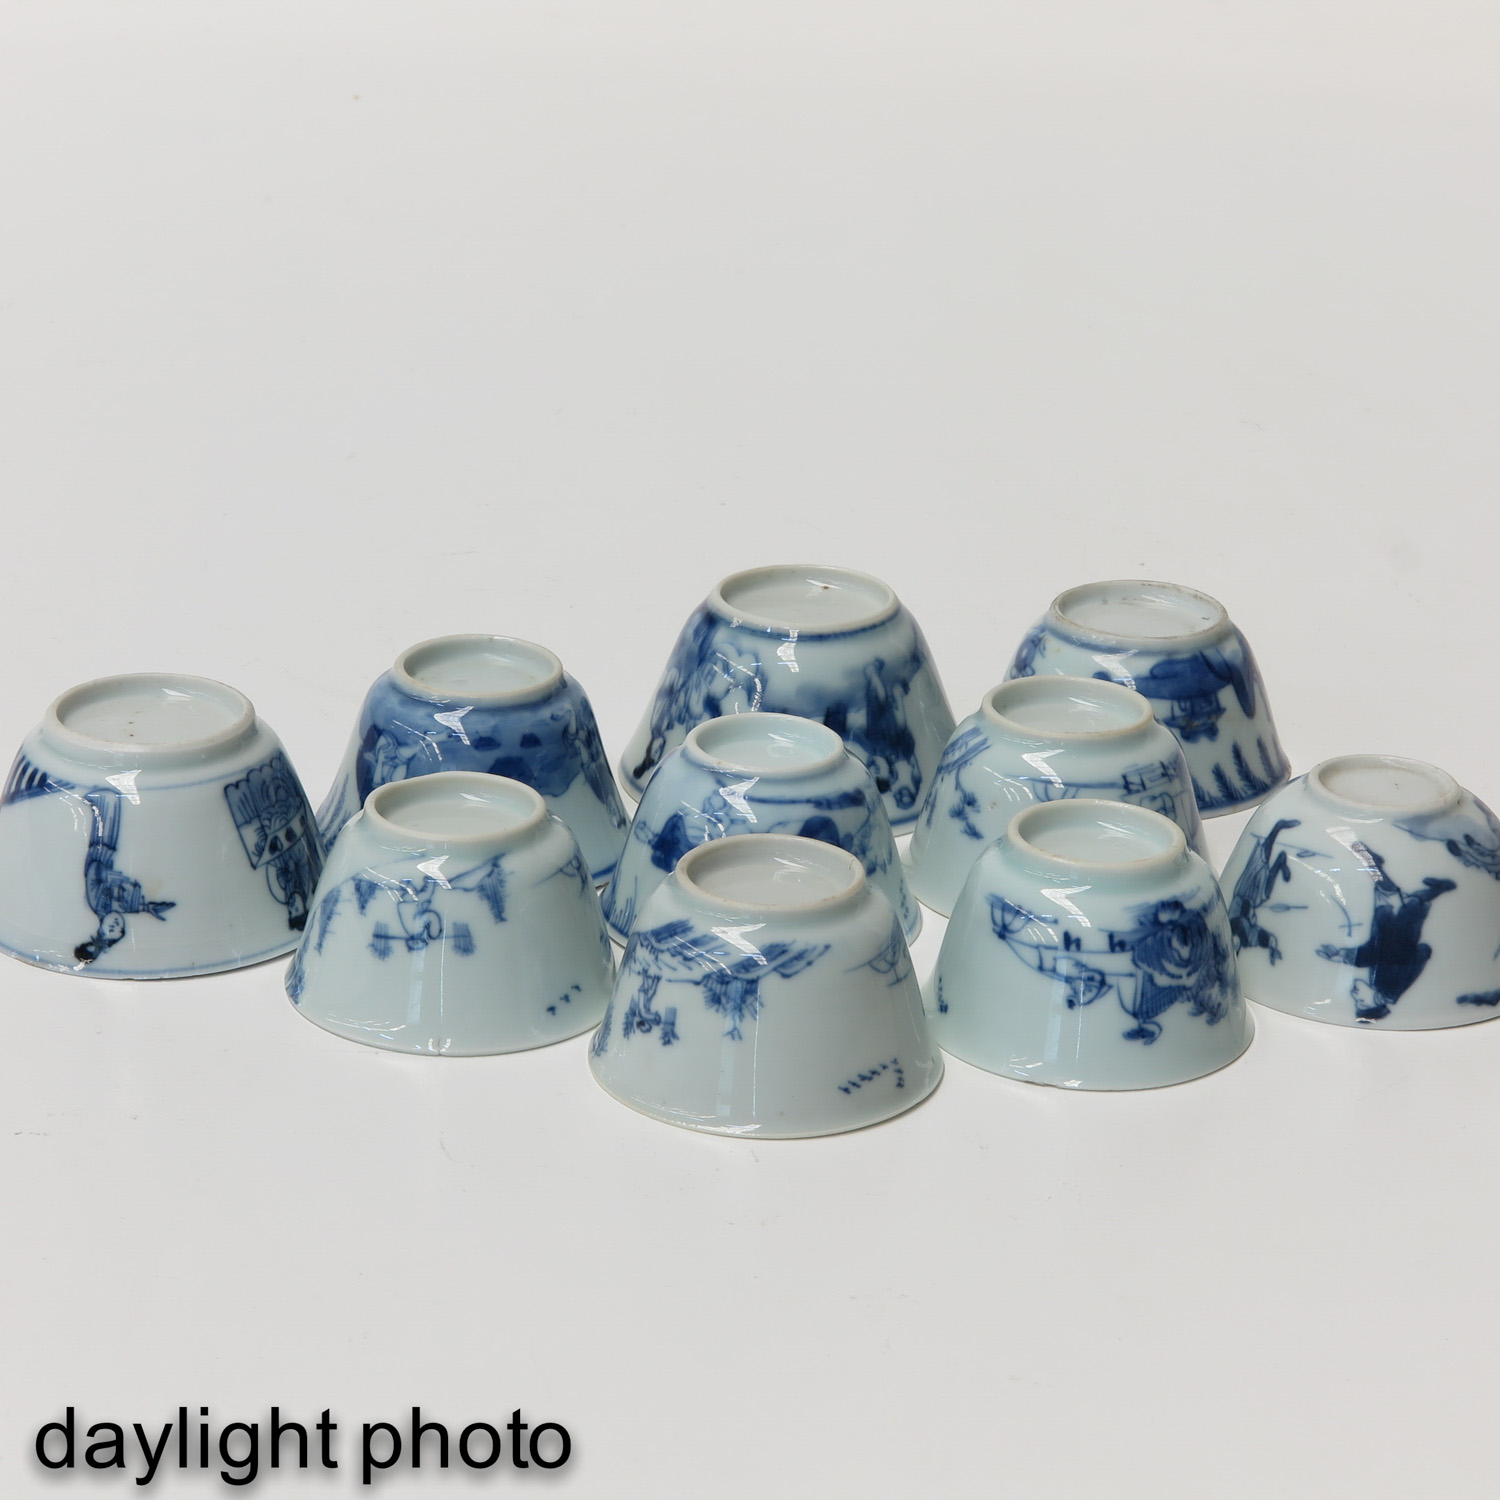 A Collection of 10 Blue and White Cups - Image 8 of 10